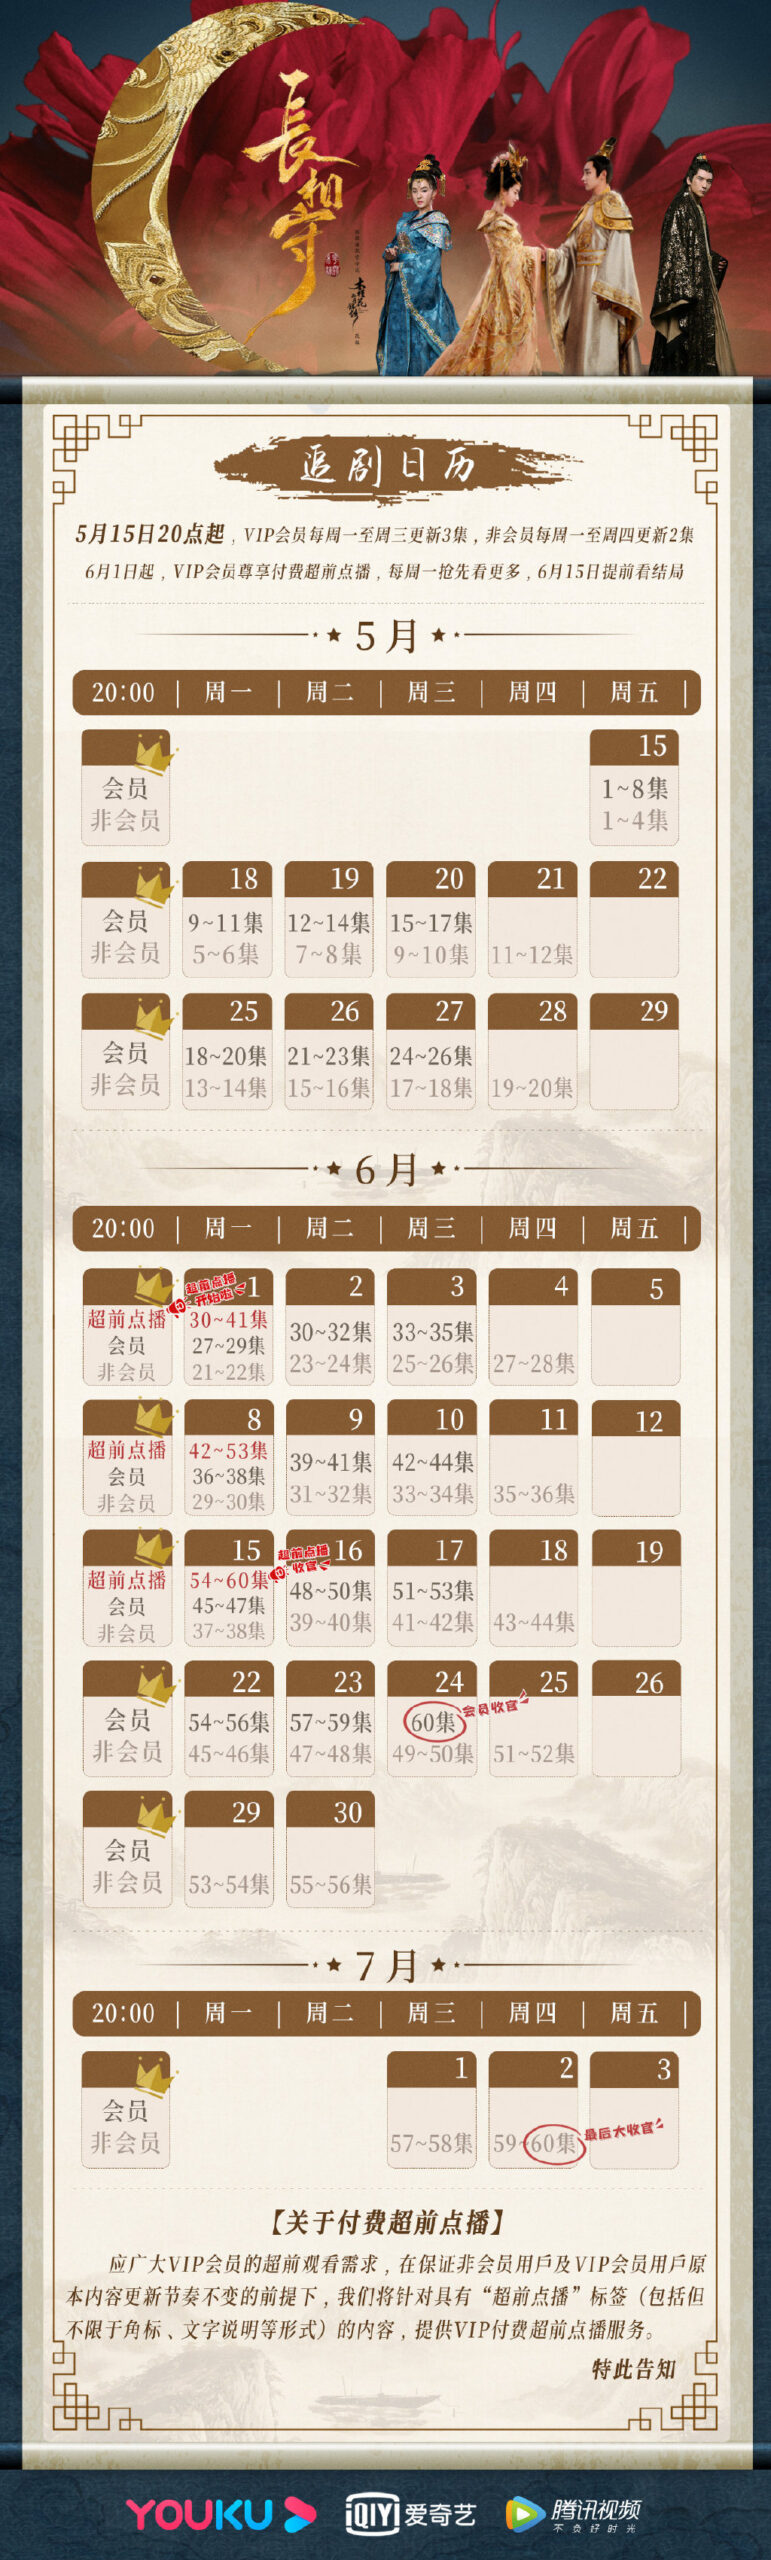 The Twin Flower Legend Airing Calendar